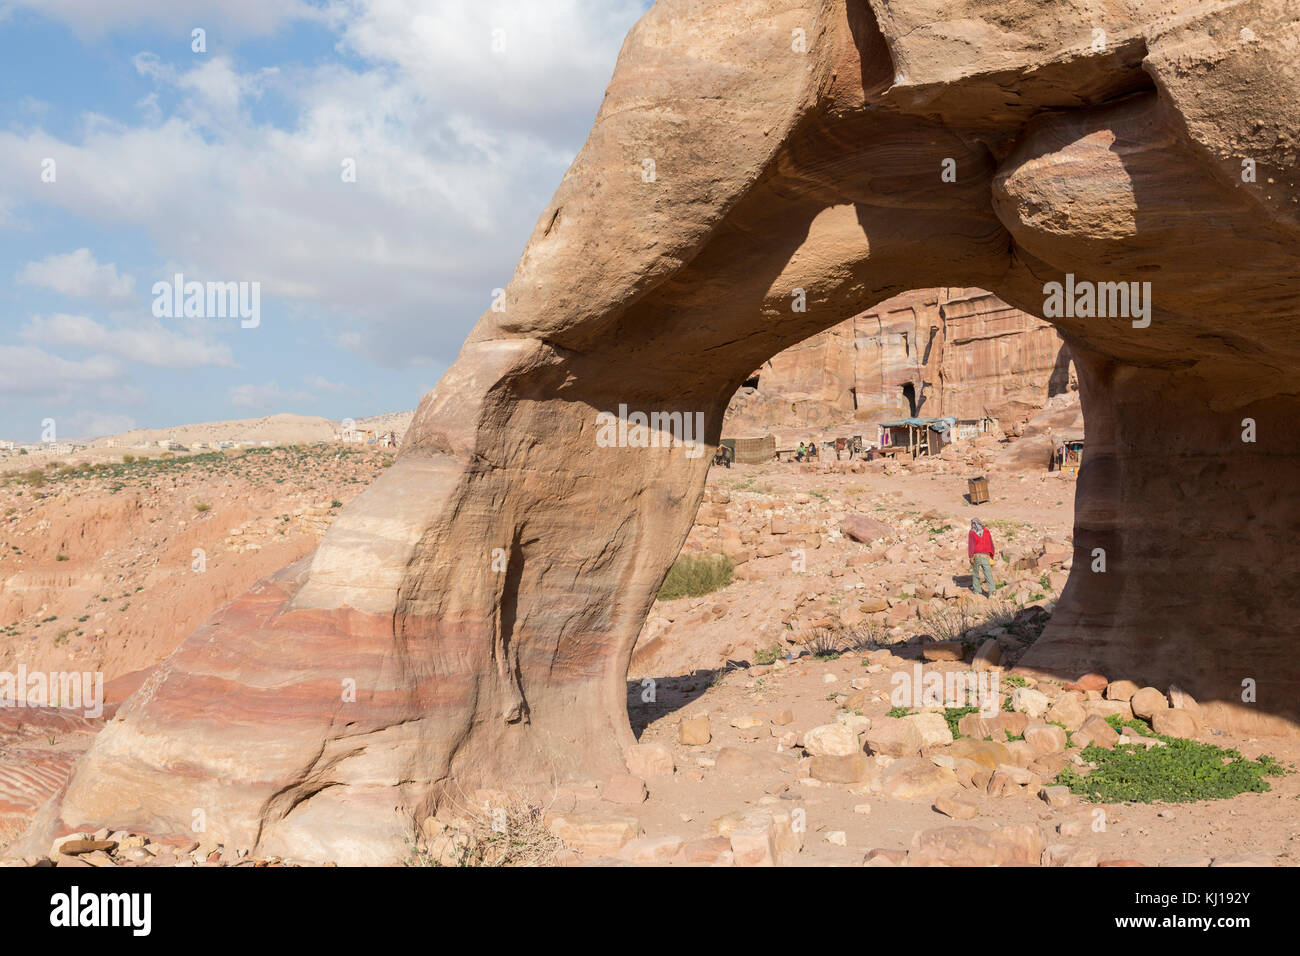 Stone Arch in the valley of Petra, Jordan Stock Photo